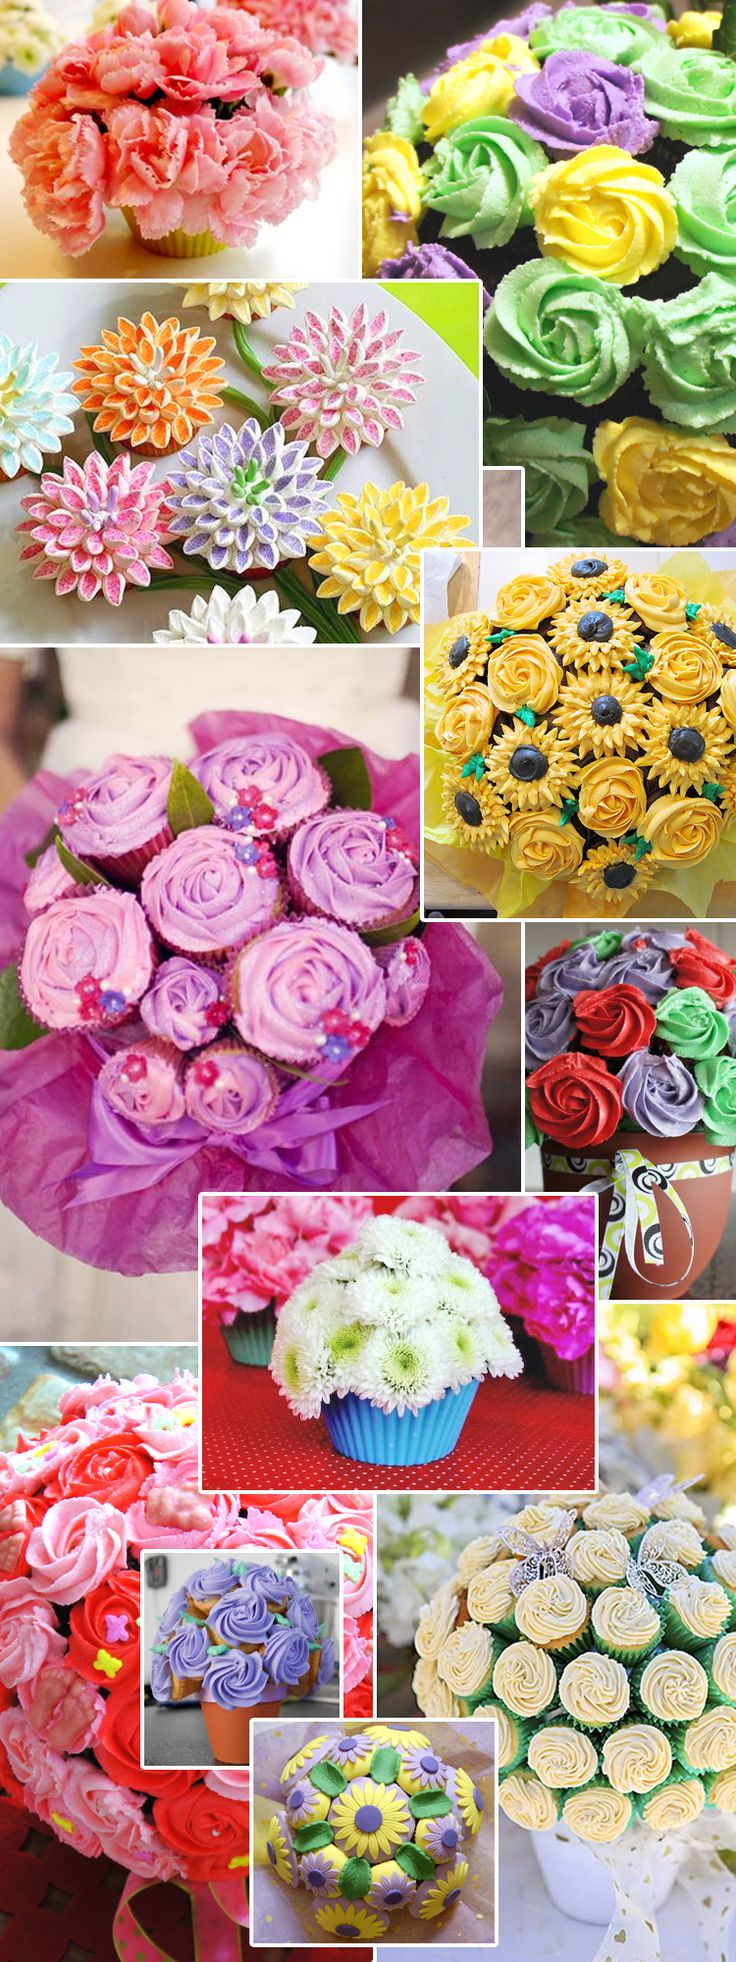 Cupcake boquets...wouldn't it be cool to have your centerpieces be edibile? Serves as two purposes and nothing goes to waste!